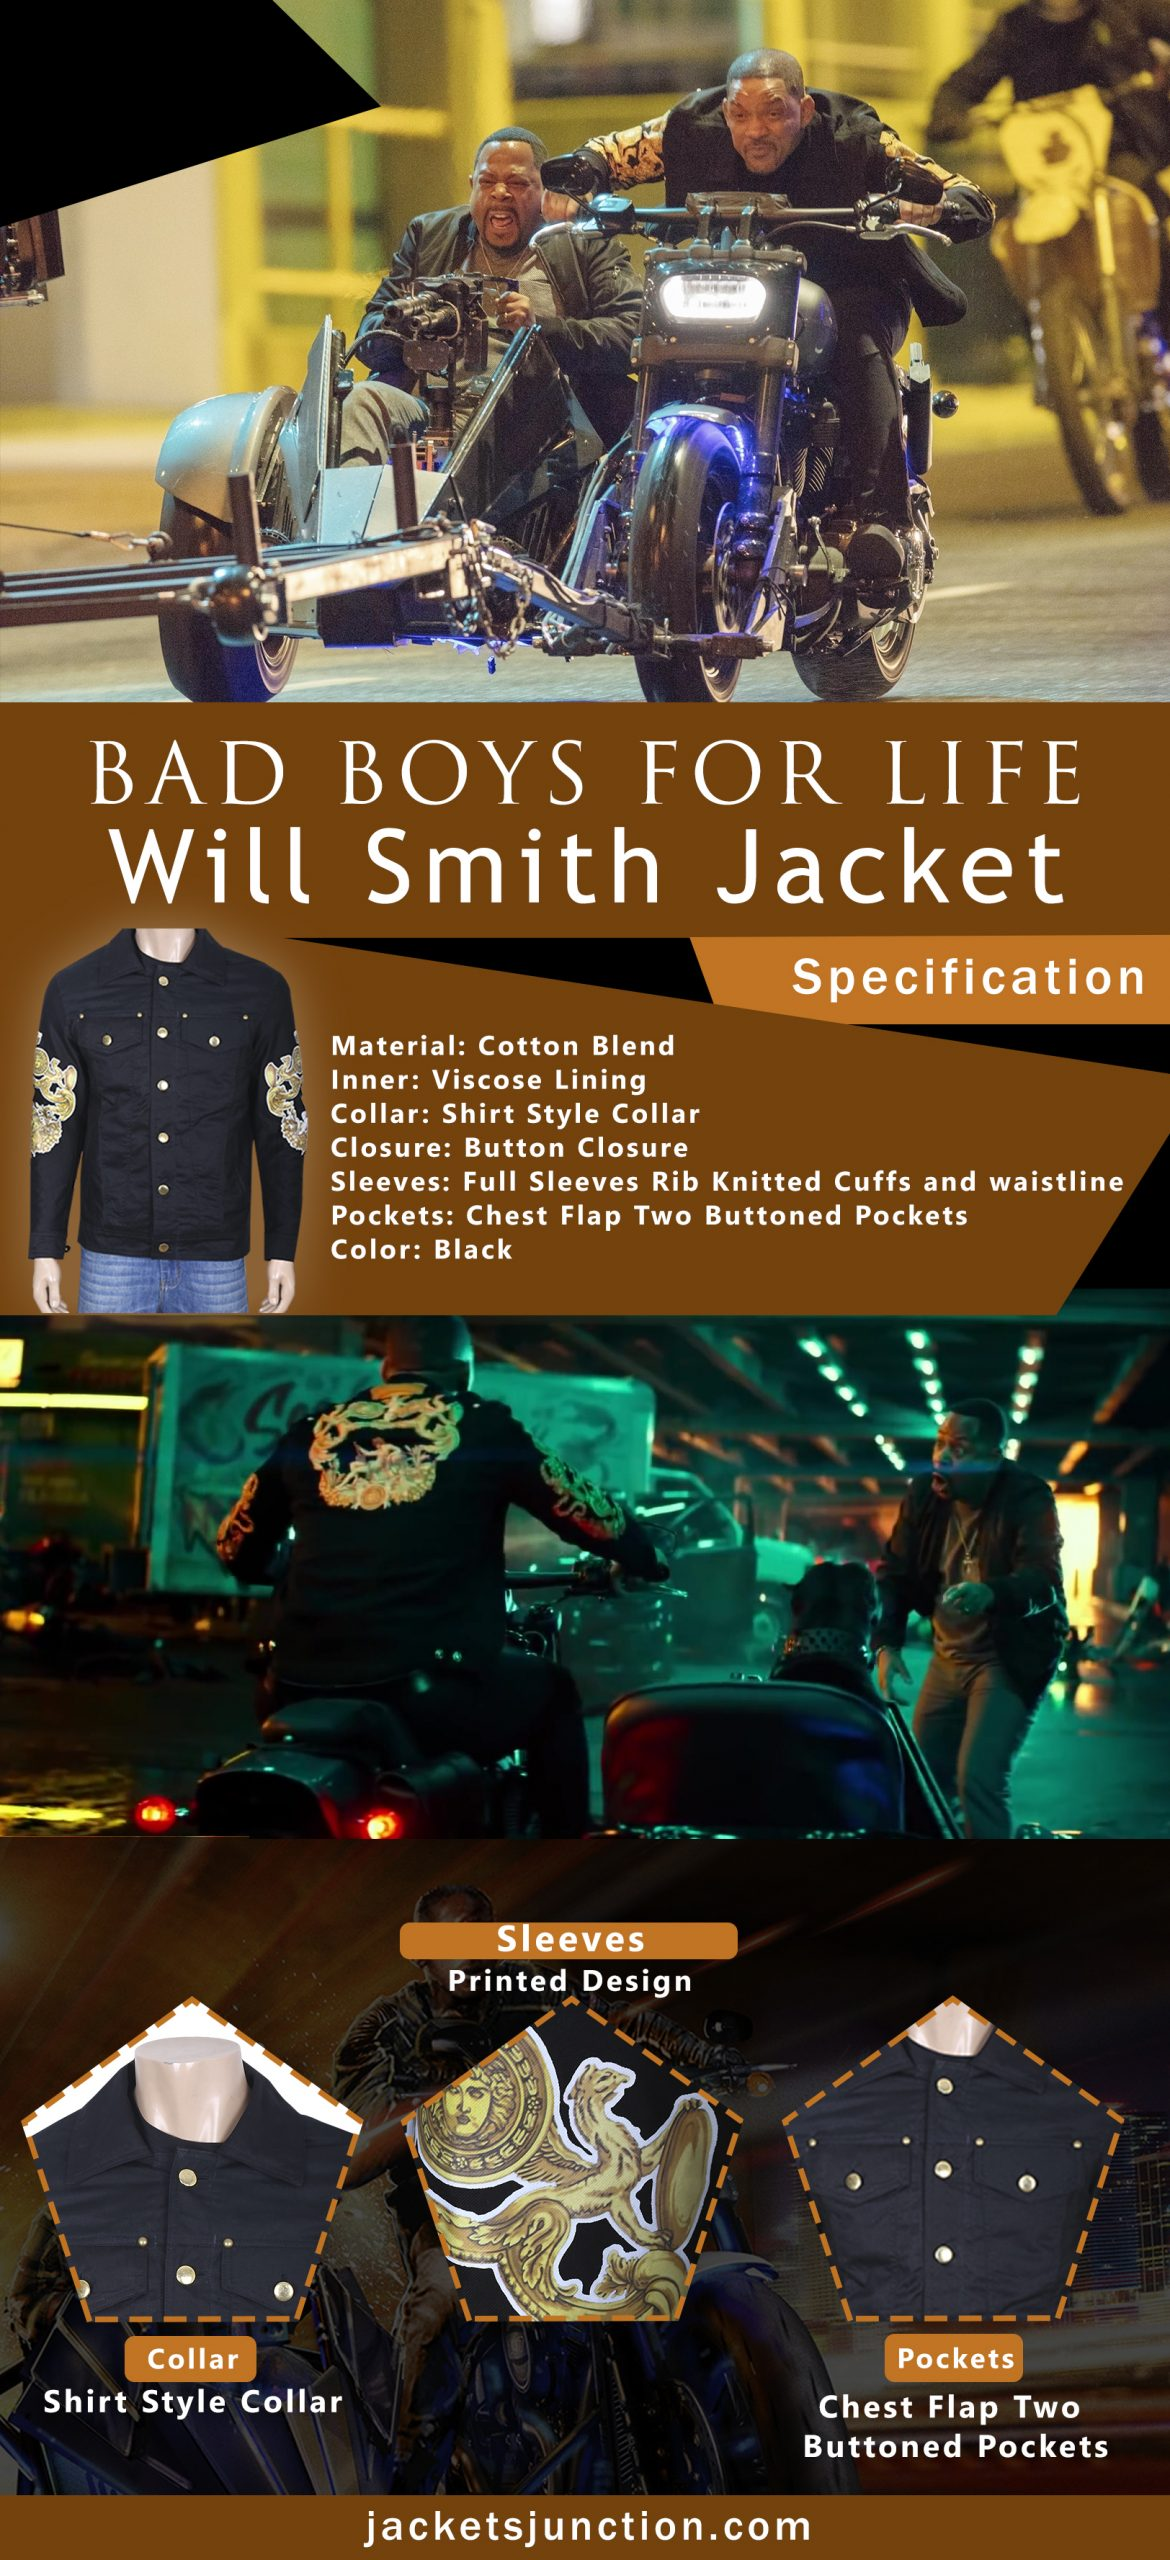 Bad Boys For Life Will Smith Jacket Infographic